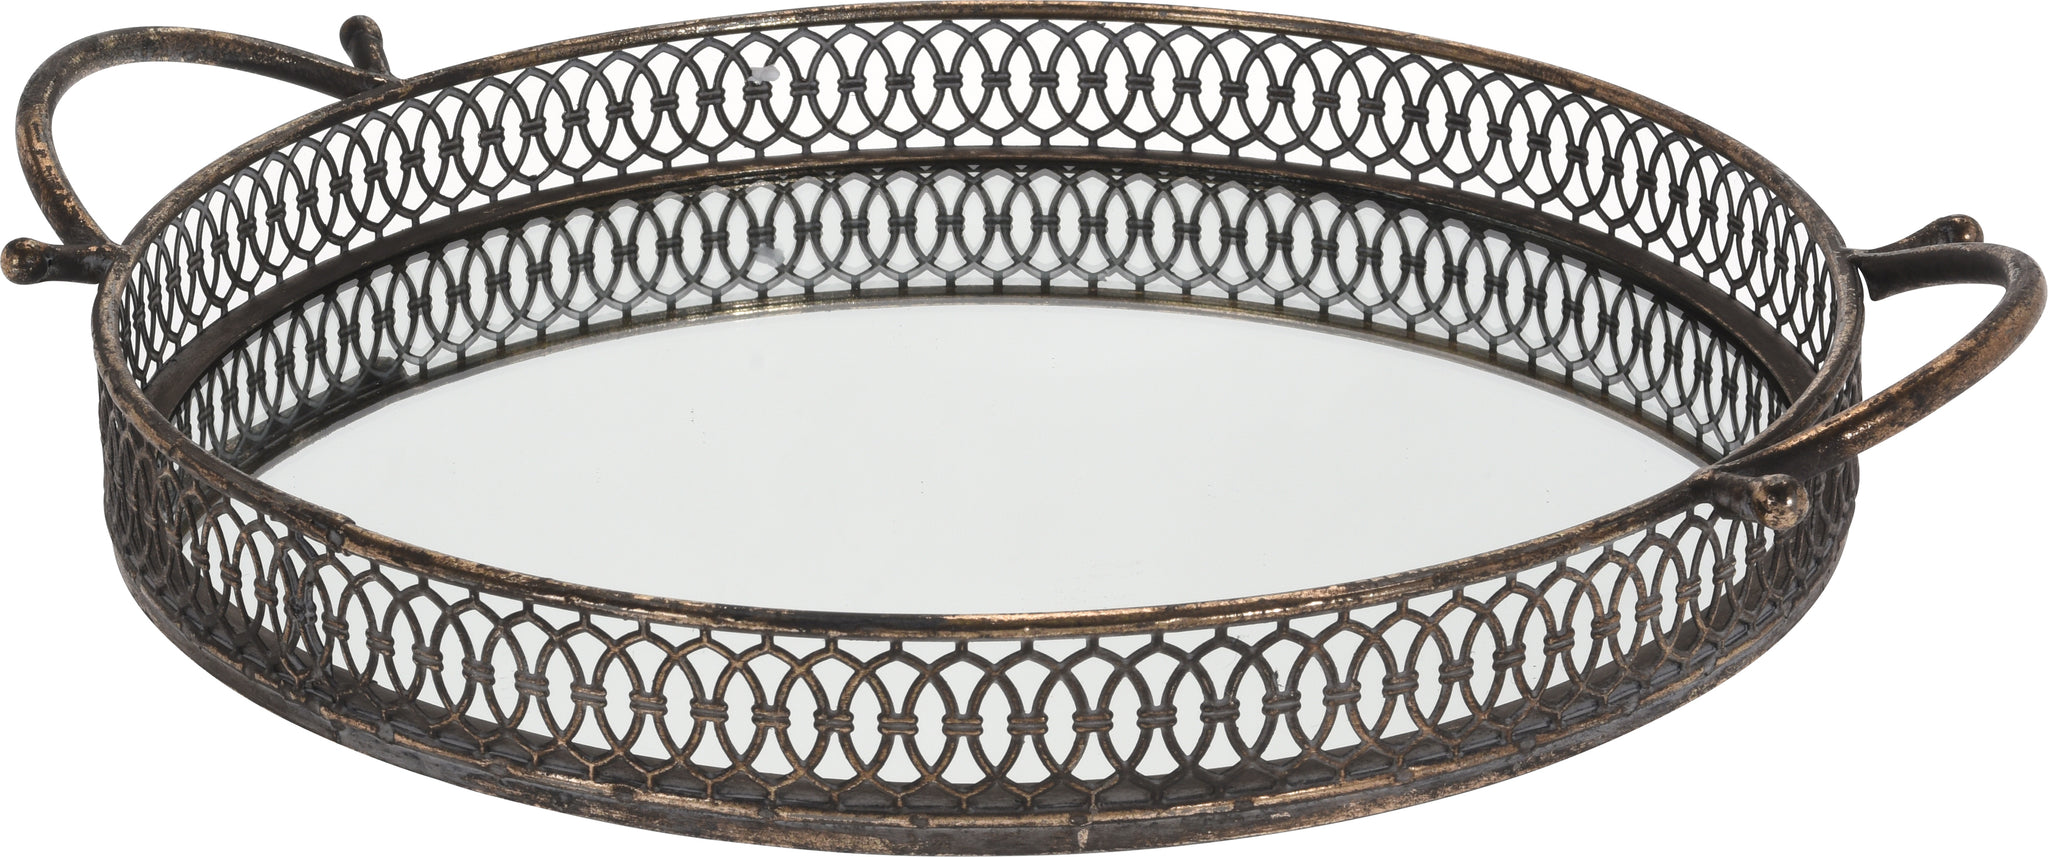 35cm Round Gold Antique Tray With Mirror Tray And Carry Handle Heavywe Cheerful Bargains Ltd